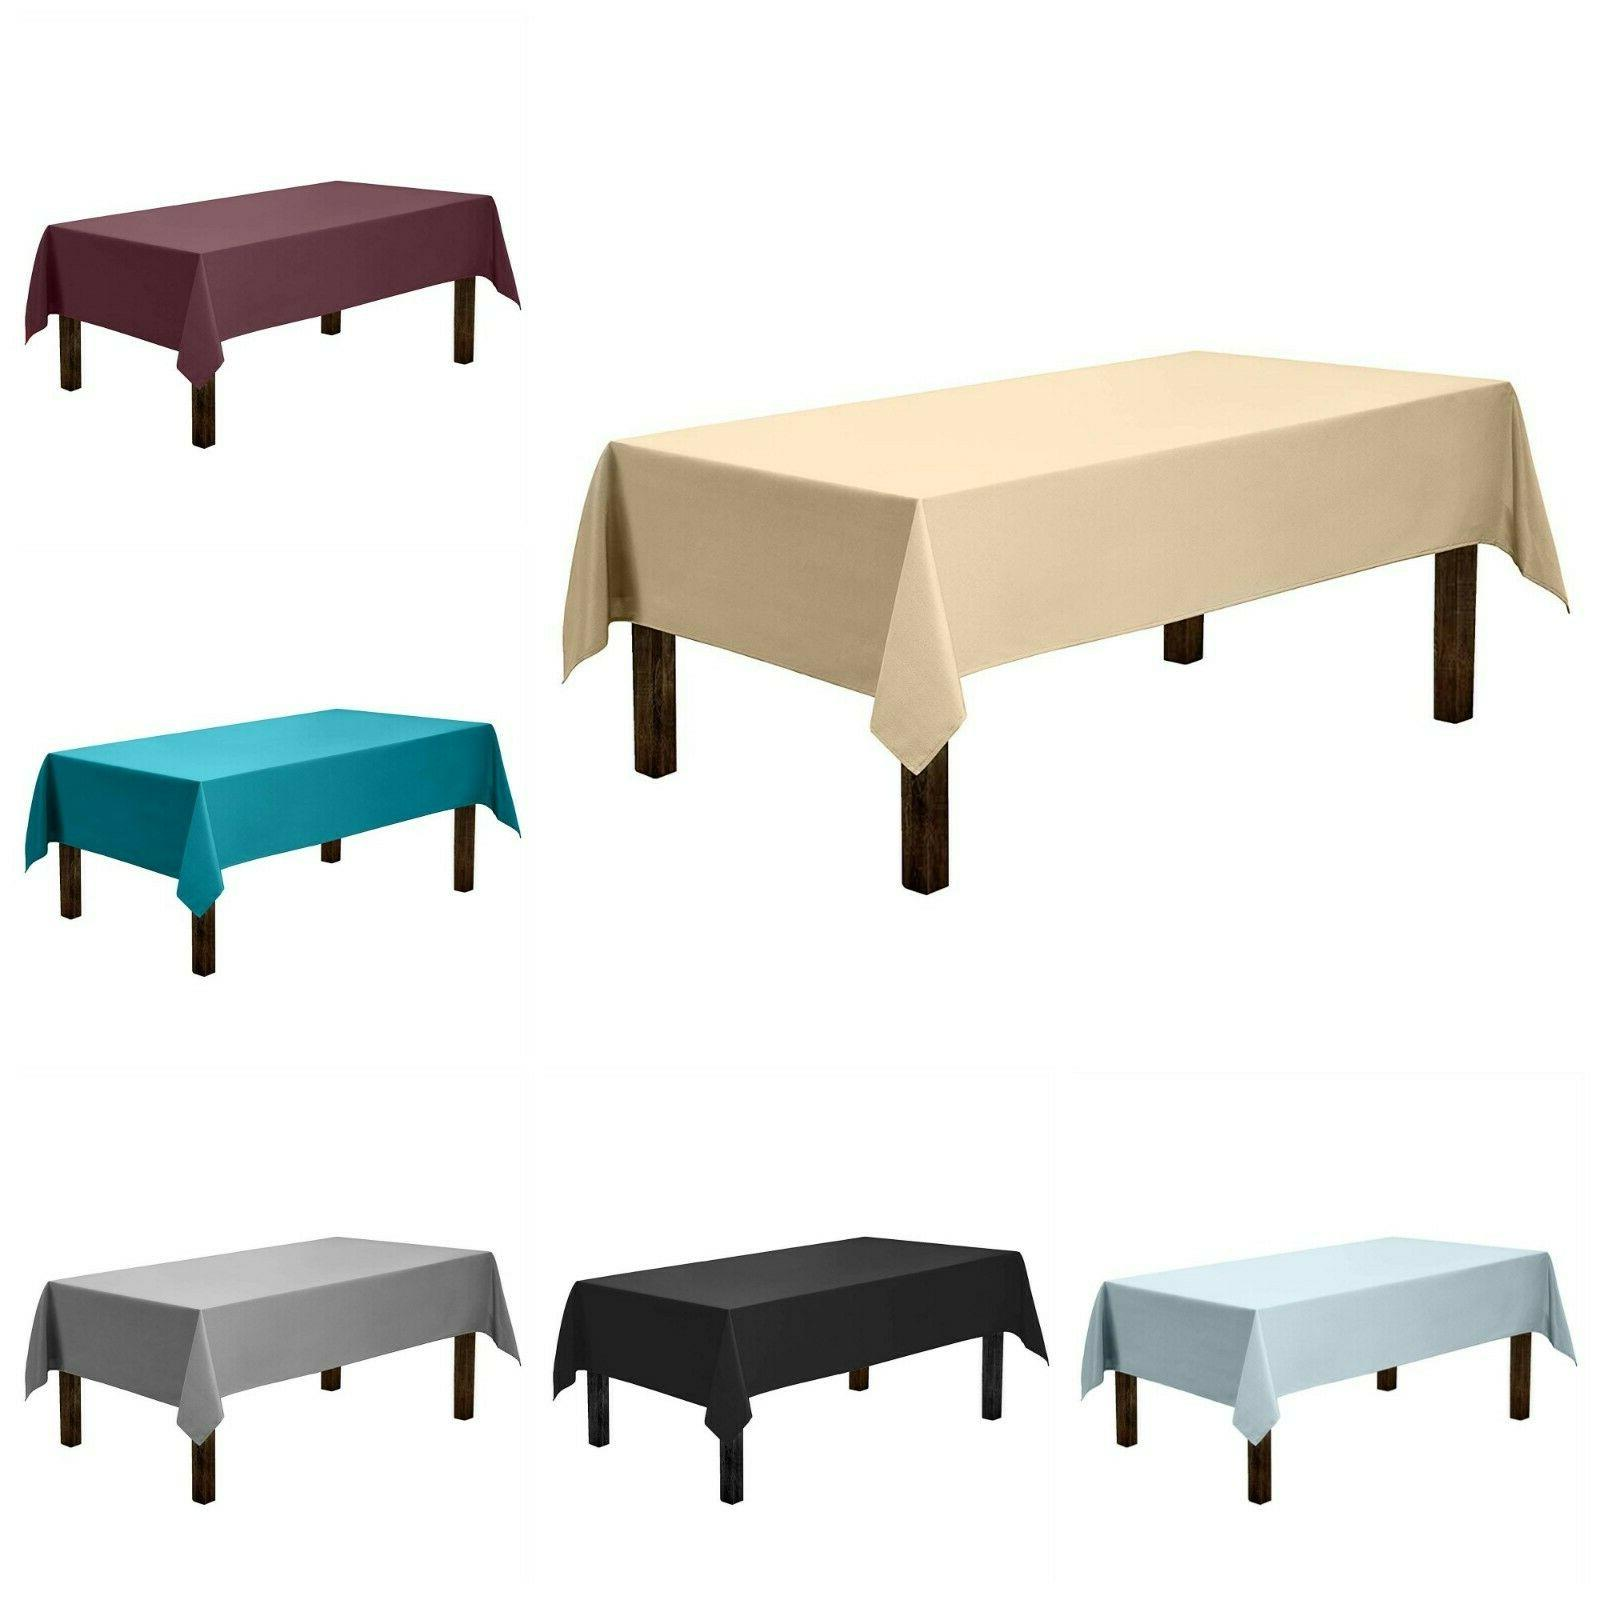 Tablecloth For Buffet Table Dinner Parties Rectangular Table